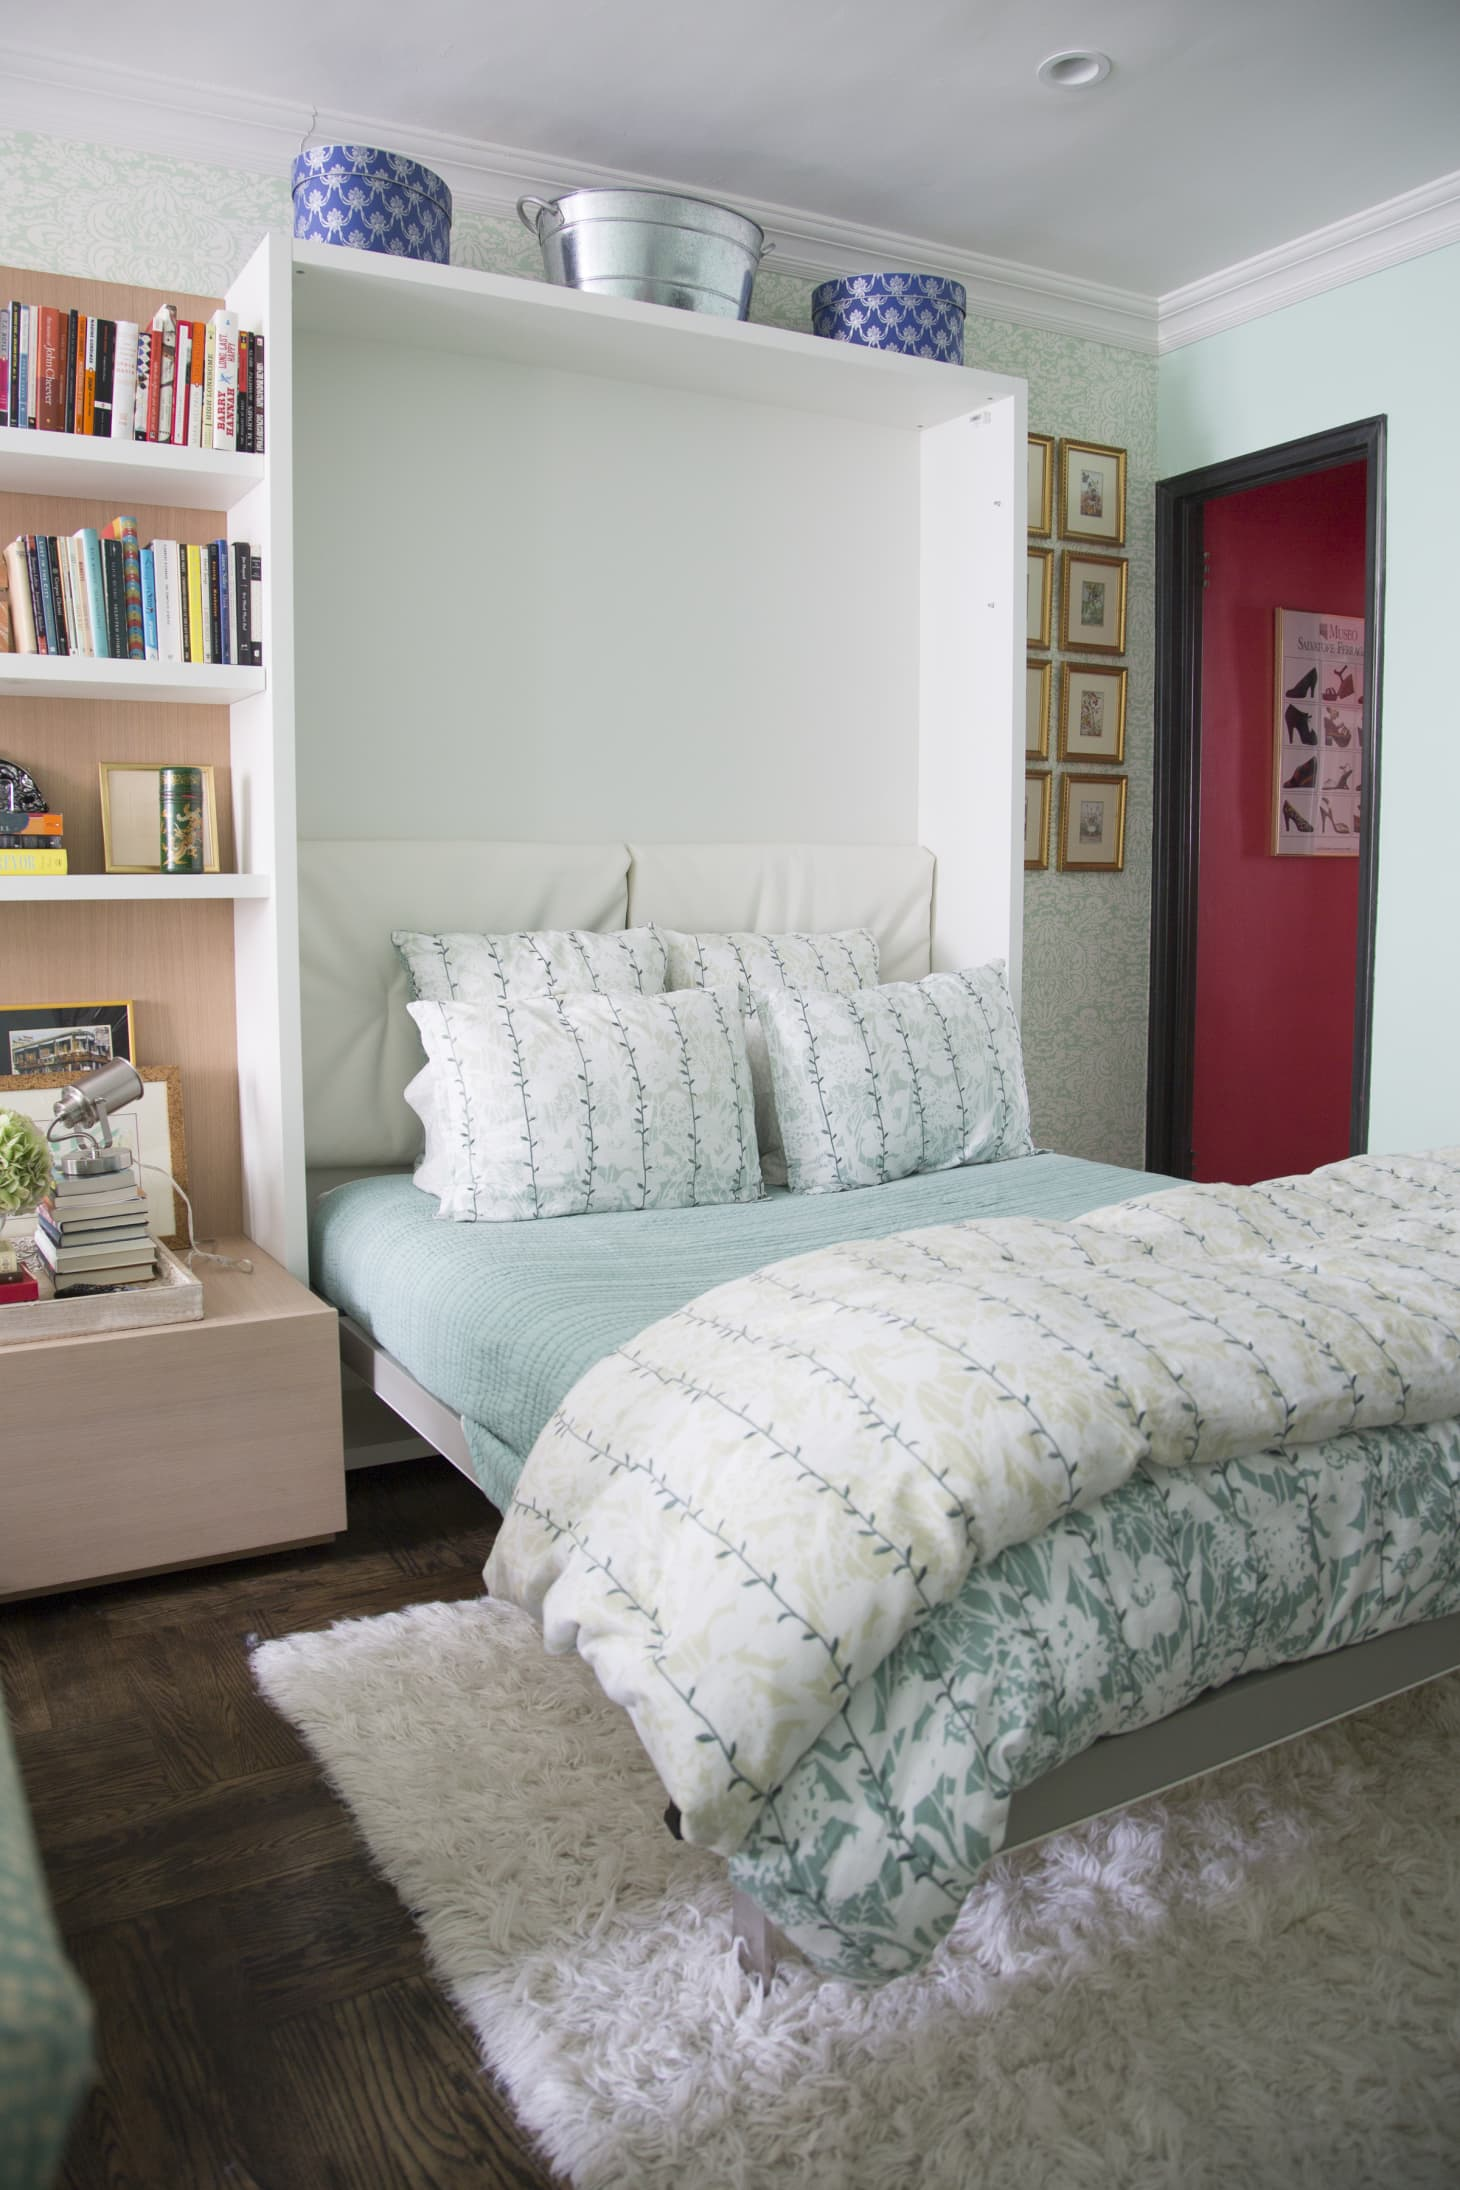 Murphy Bed Info and Advice from Studio Dwellers | Apartment ...